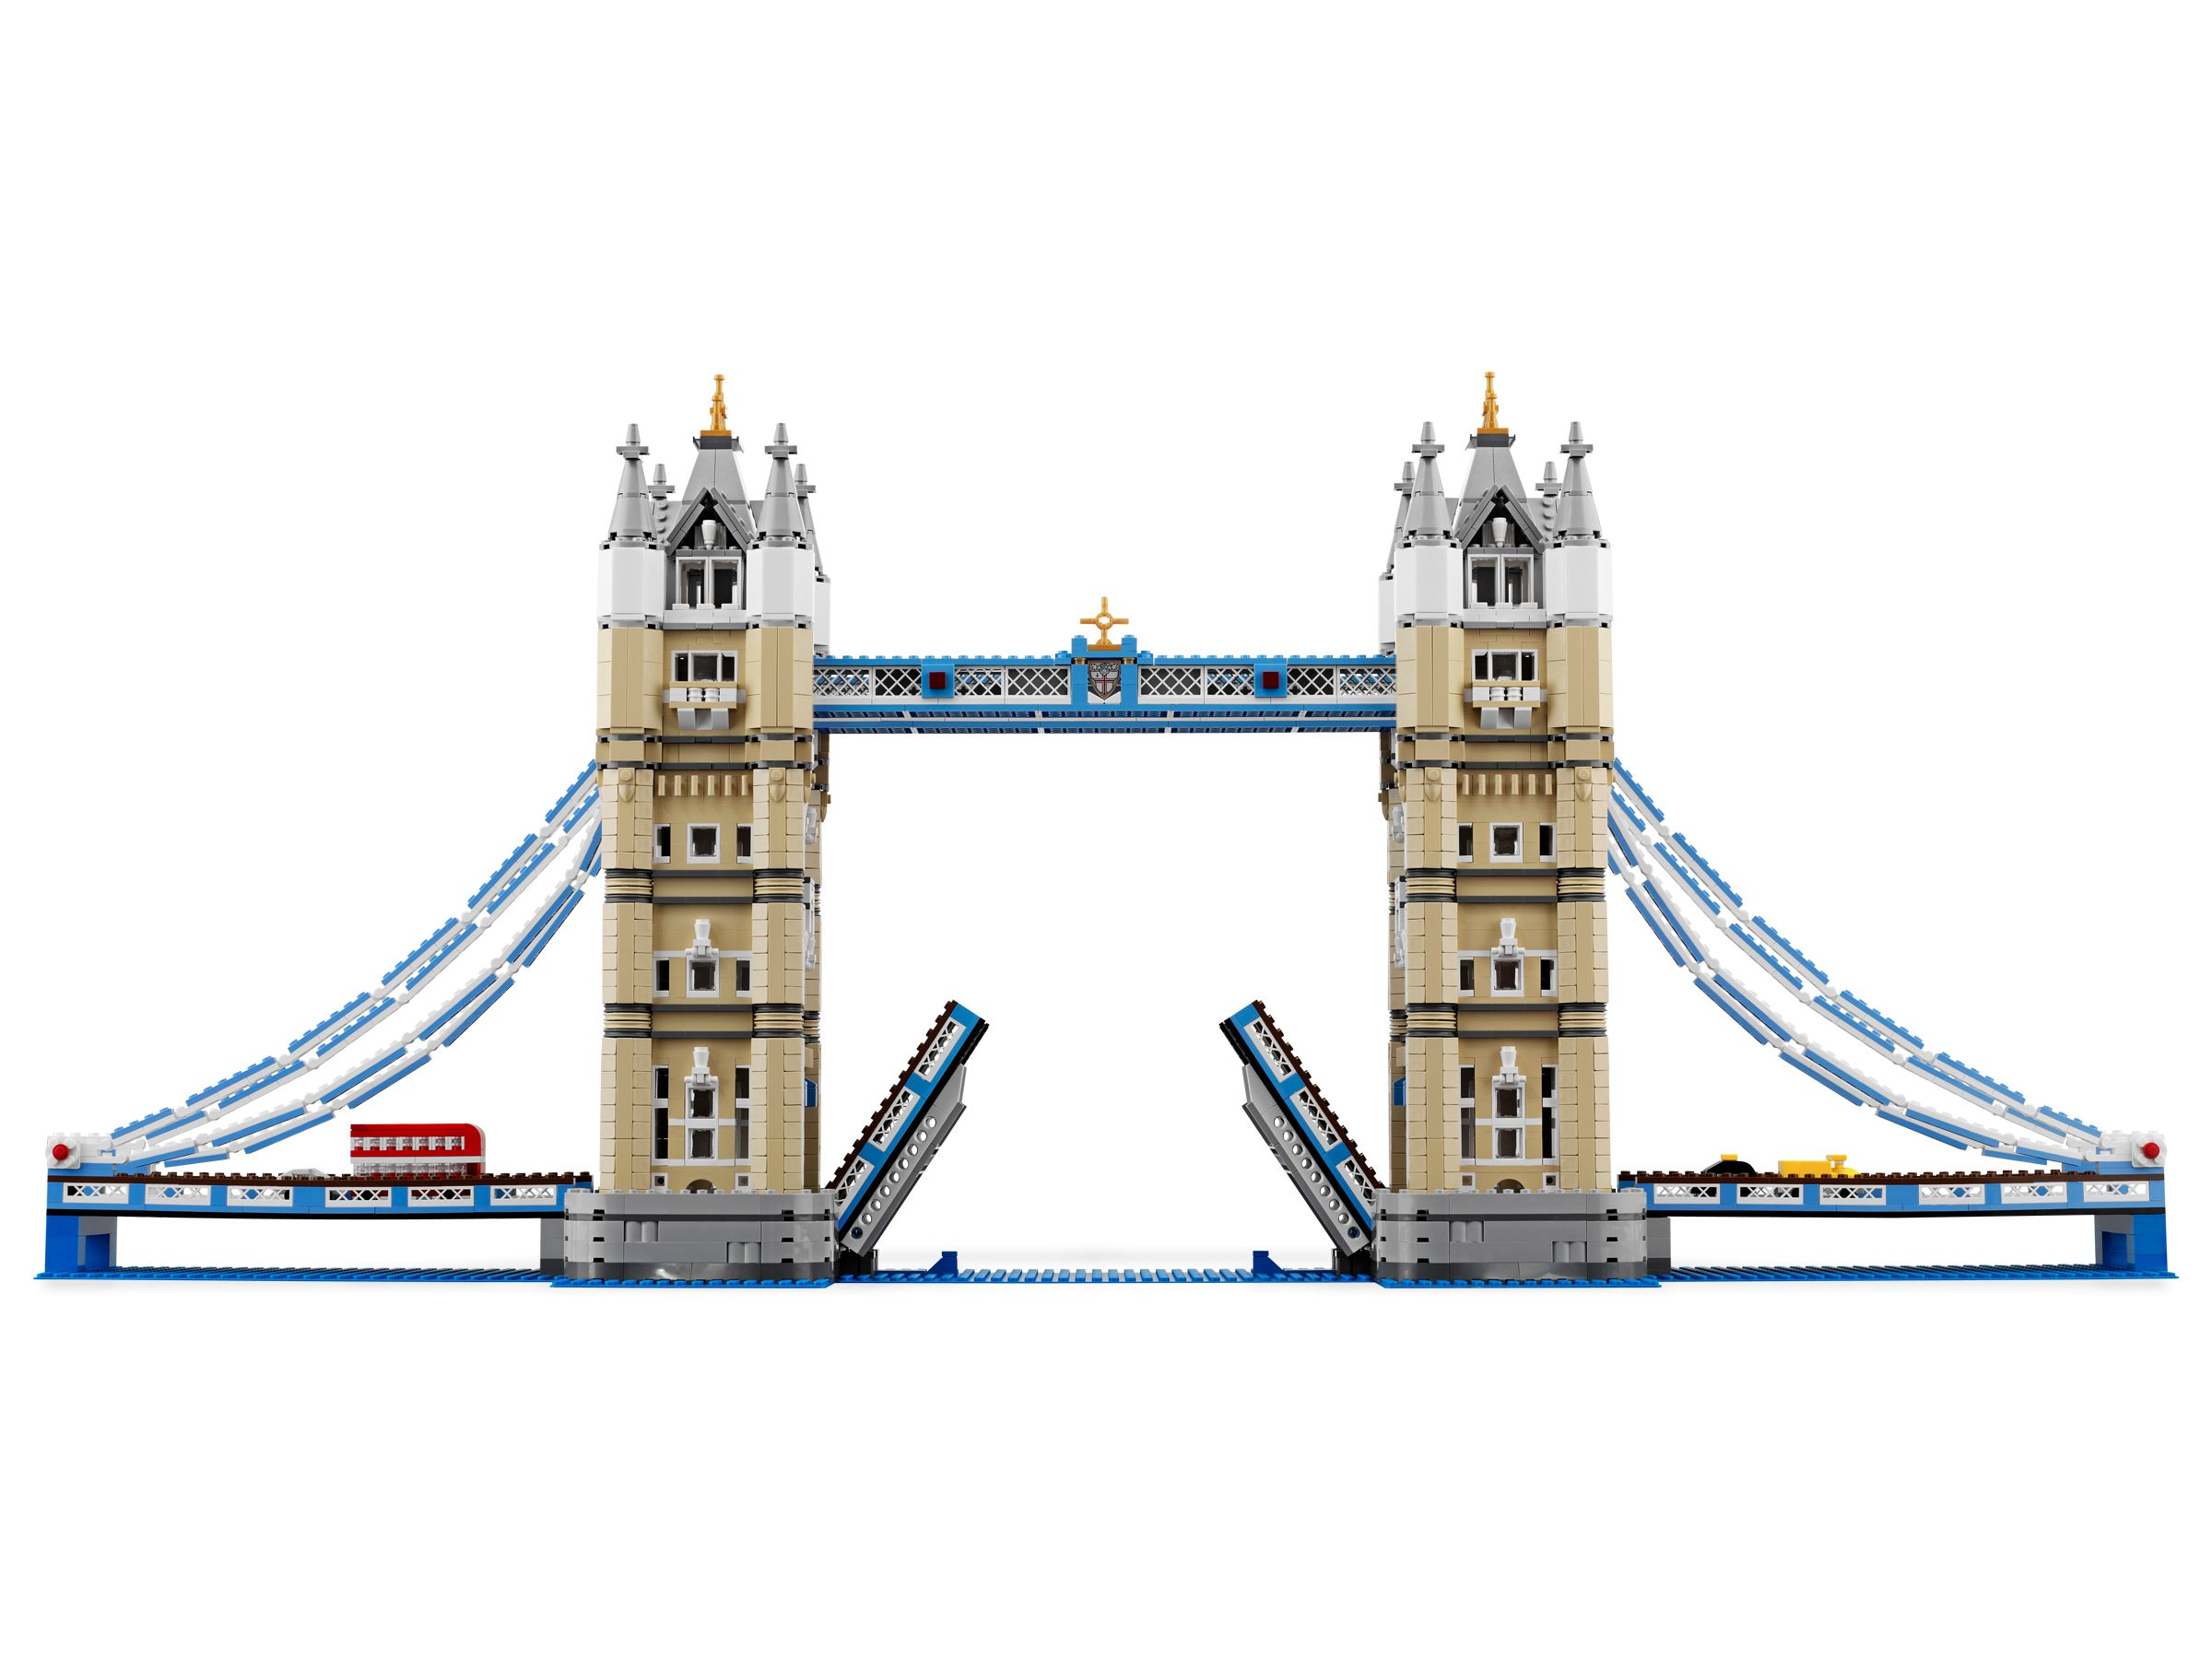 LEGO Advanced Models 10214 Tower Bridge LEGO_10214_alt4.jpg